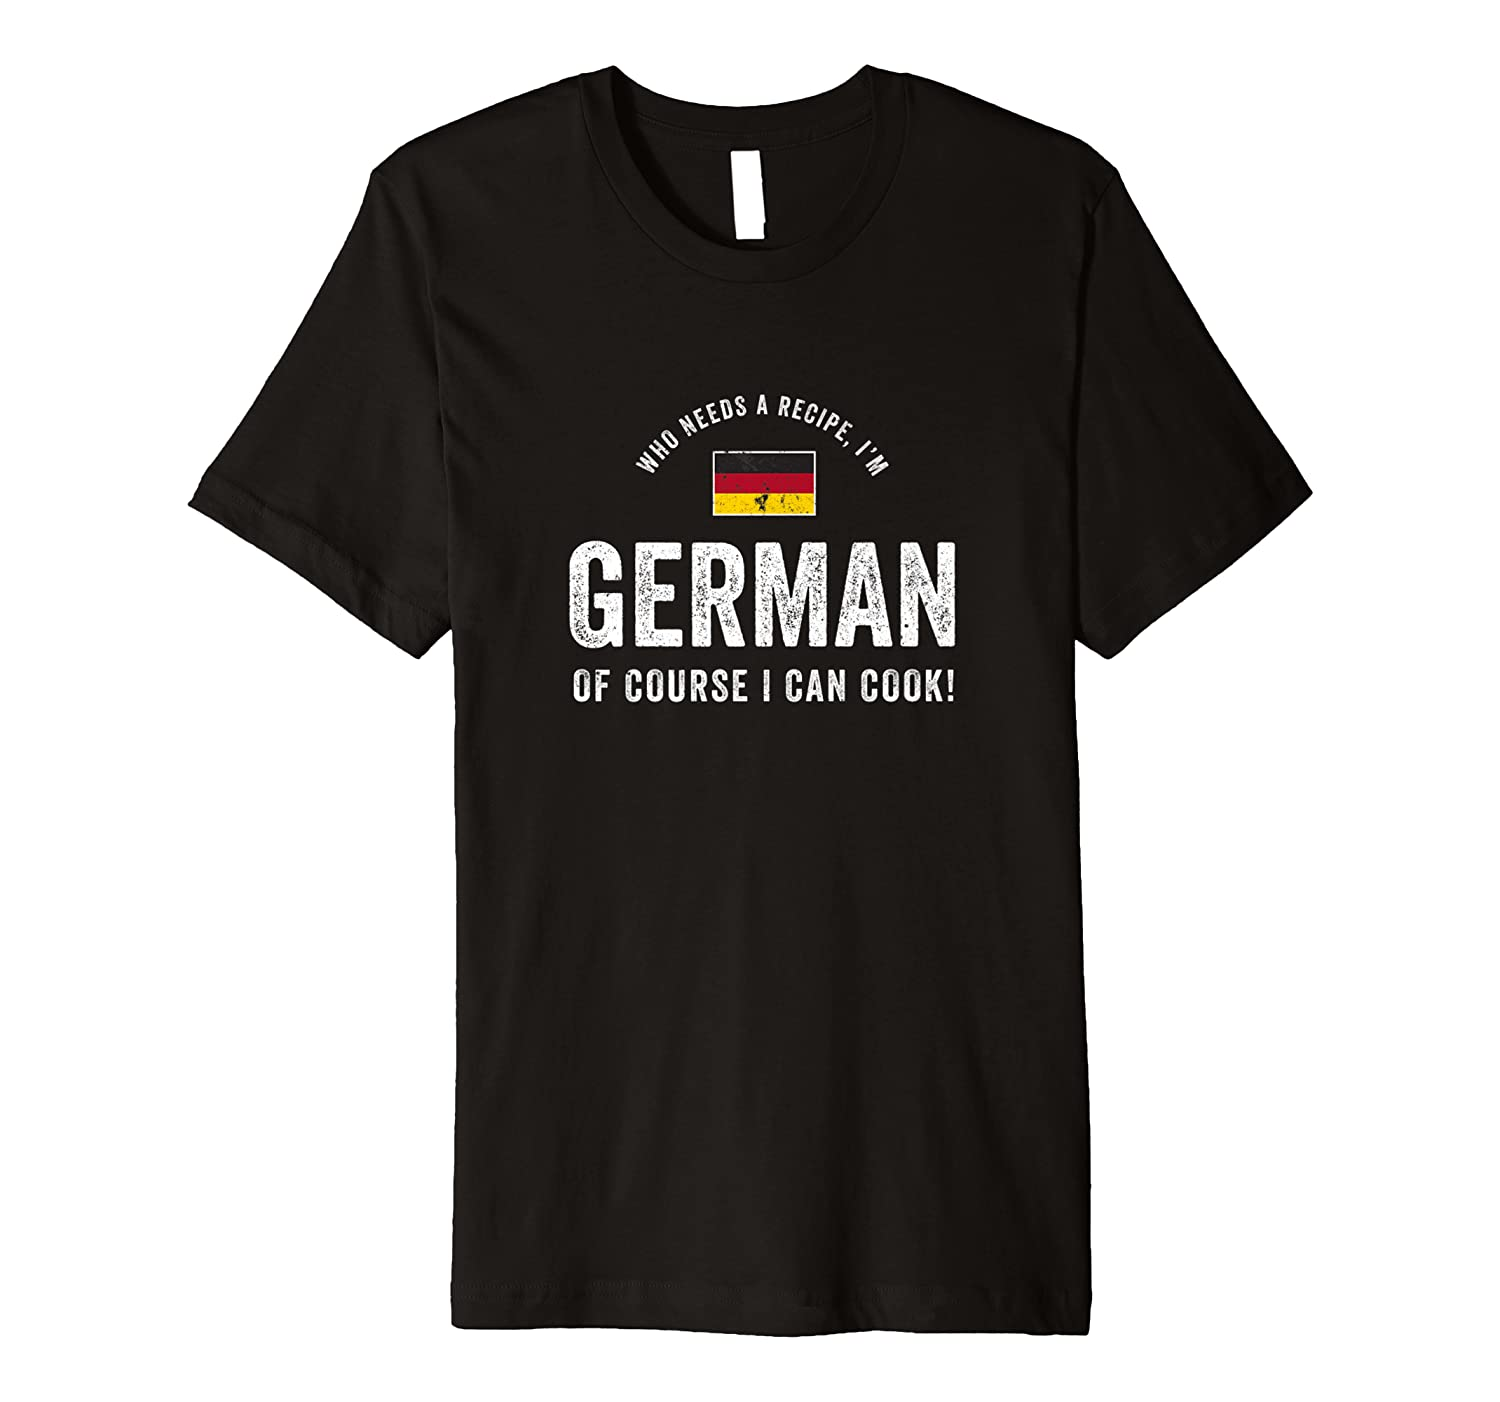 German Food Chef Flag Cute Funny Cooking T-shirt